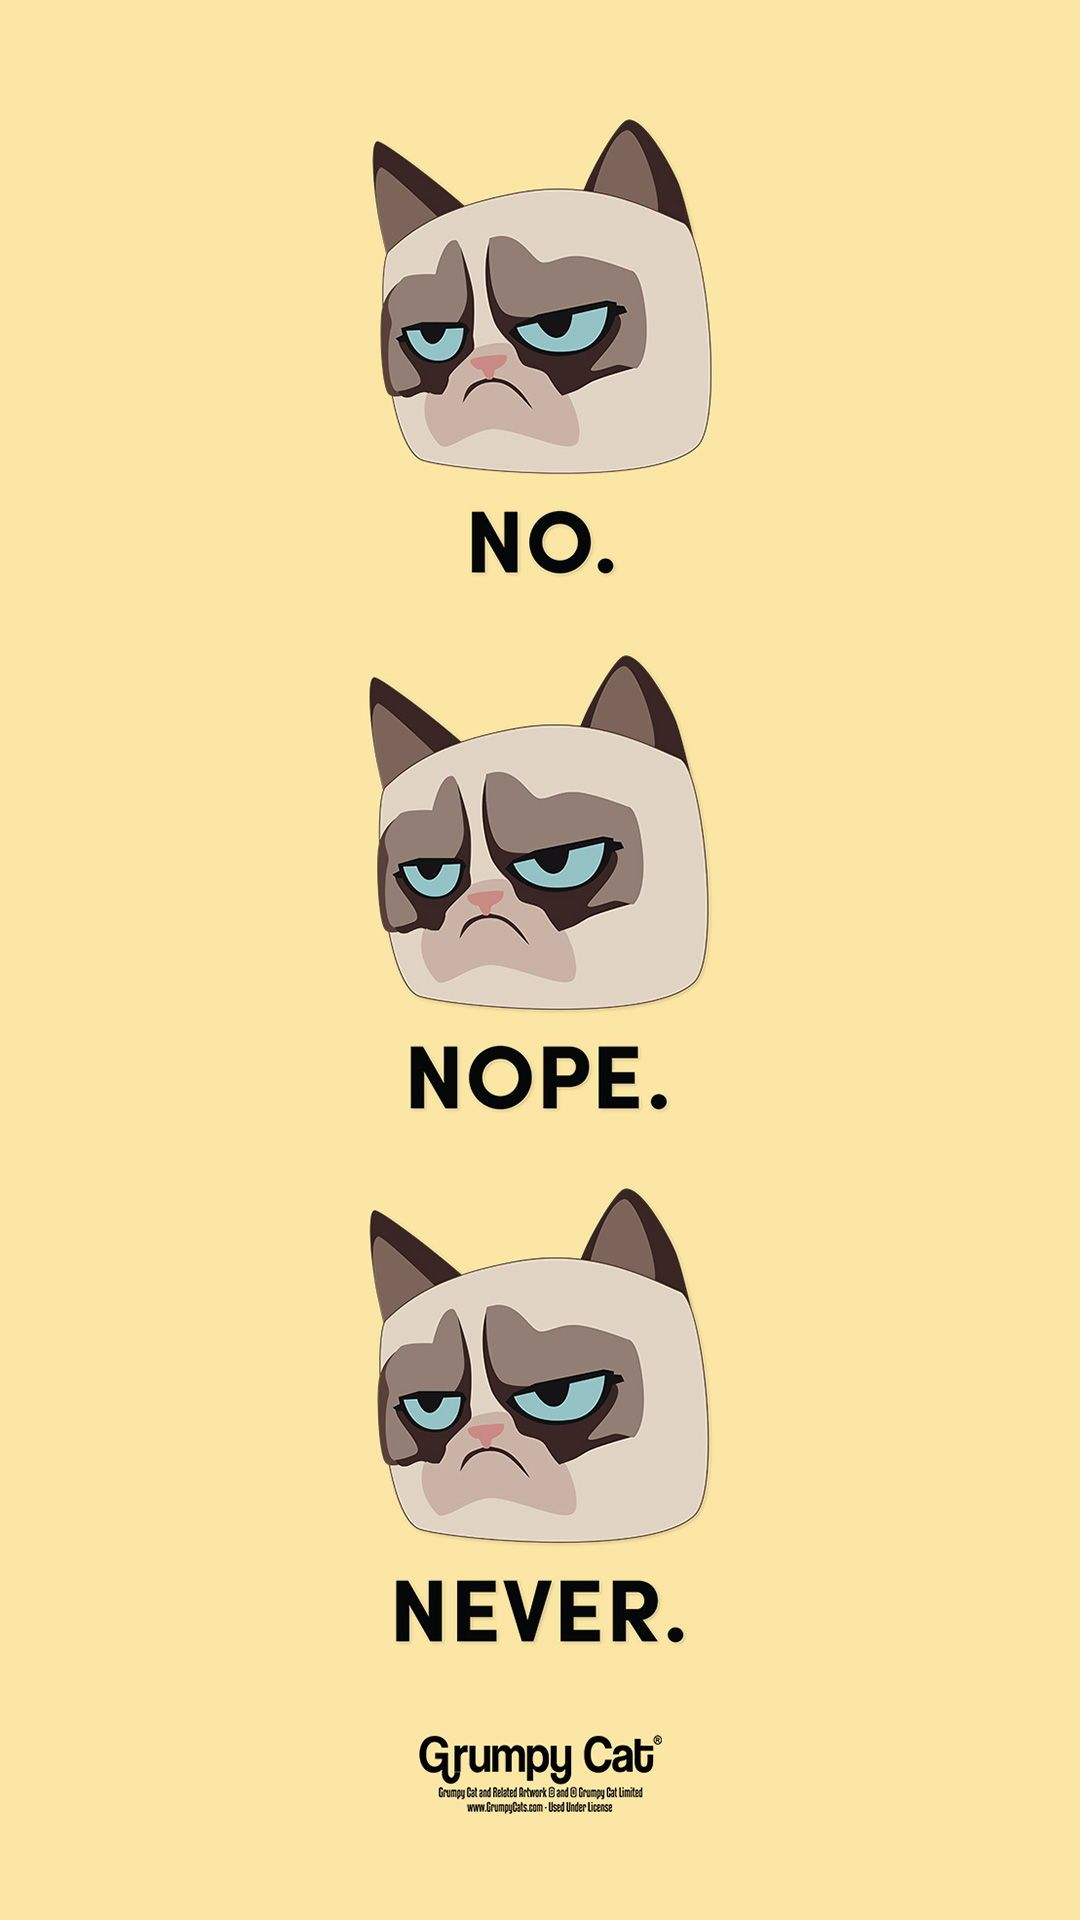 No Never Nope By Grumpy Cat Would Be A Fun Wallpaper For Your Iphone Some Sarcastic And Grumpy Attitude To Sho Cat Wallpaper Cat Phone Wallpaper Grumpy Cat